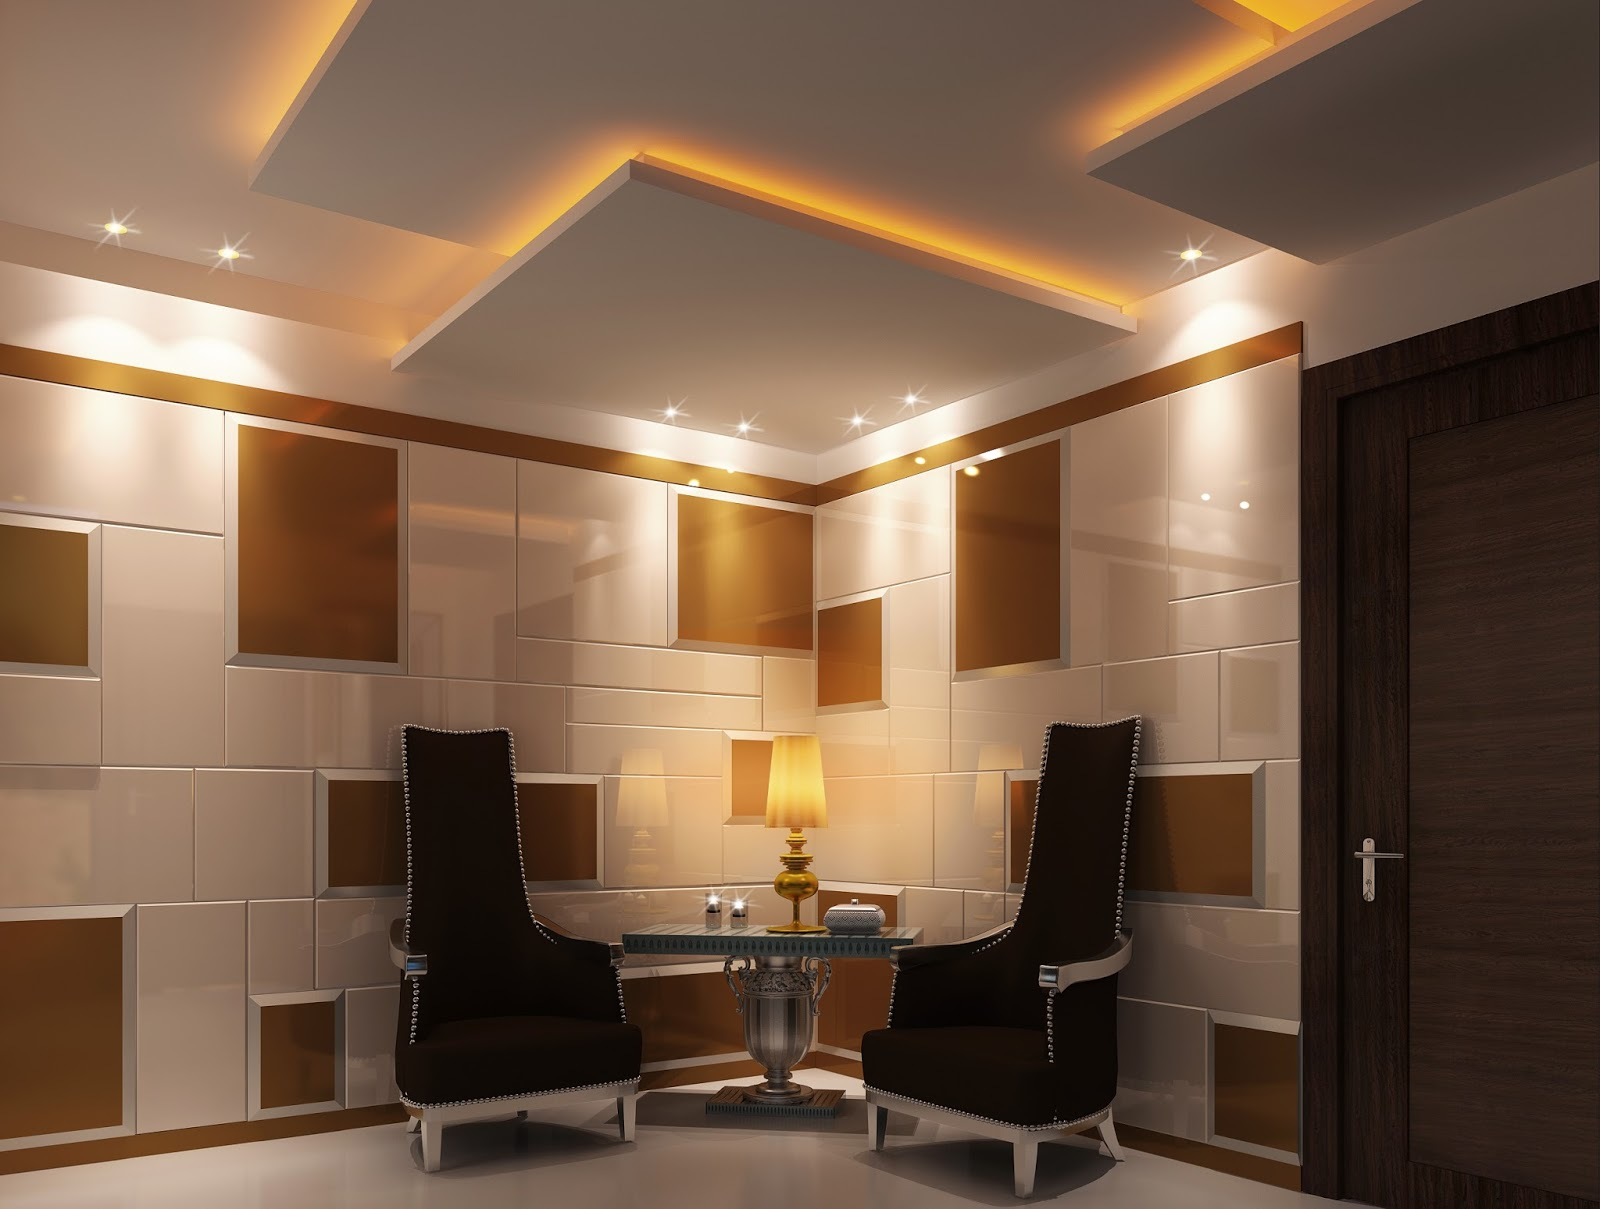 Foyer Architecture S : D visualization classical bedroom and entrance foyer design